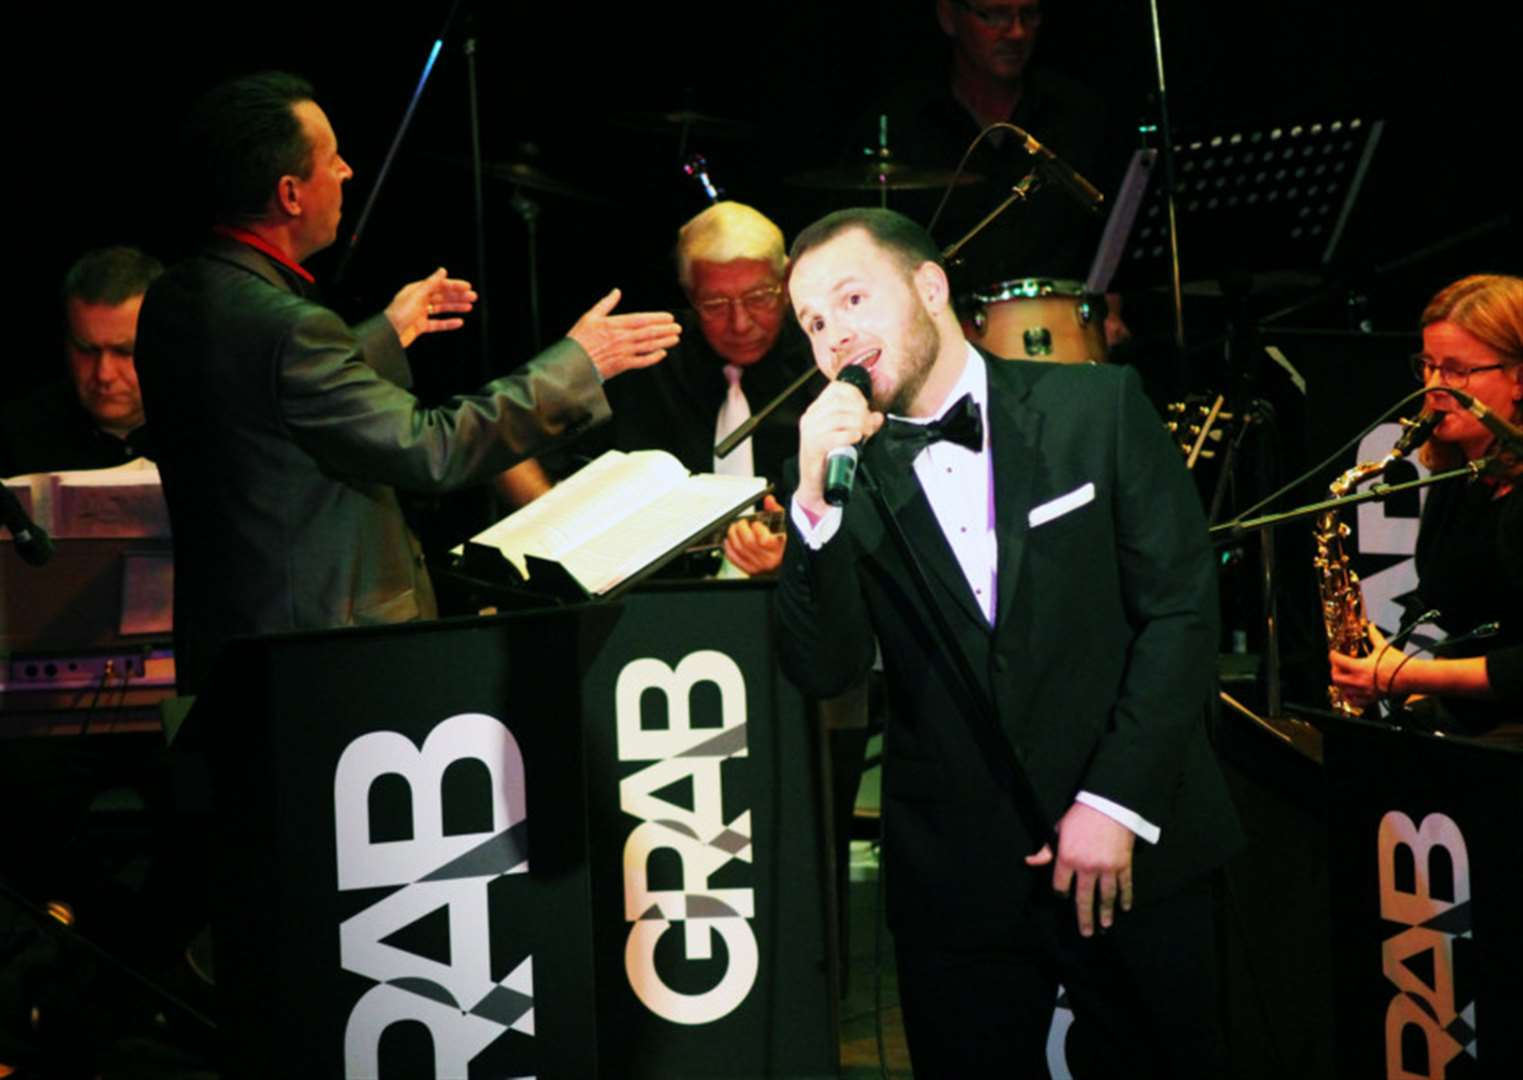 WHAT'S ON: Big band back by popular demand at Grantham arts centre